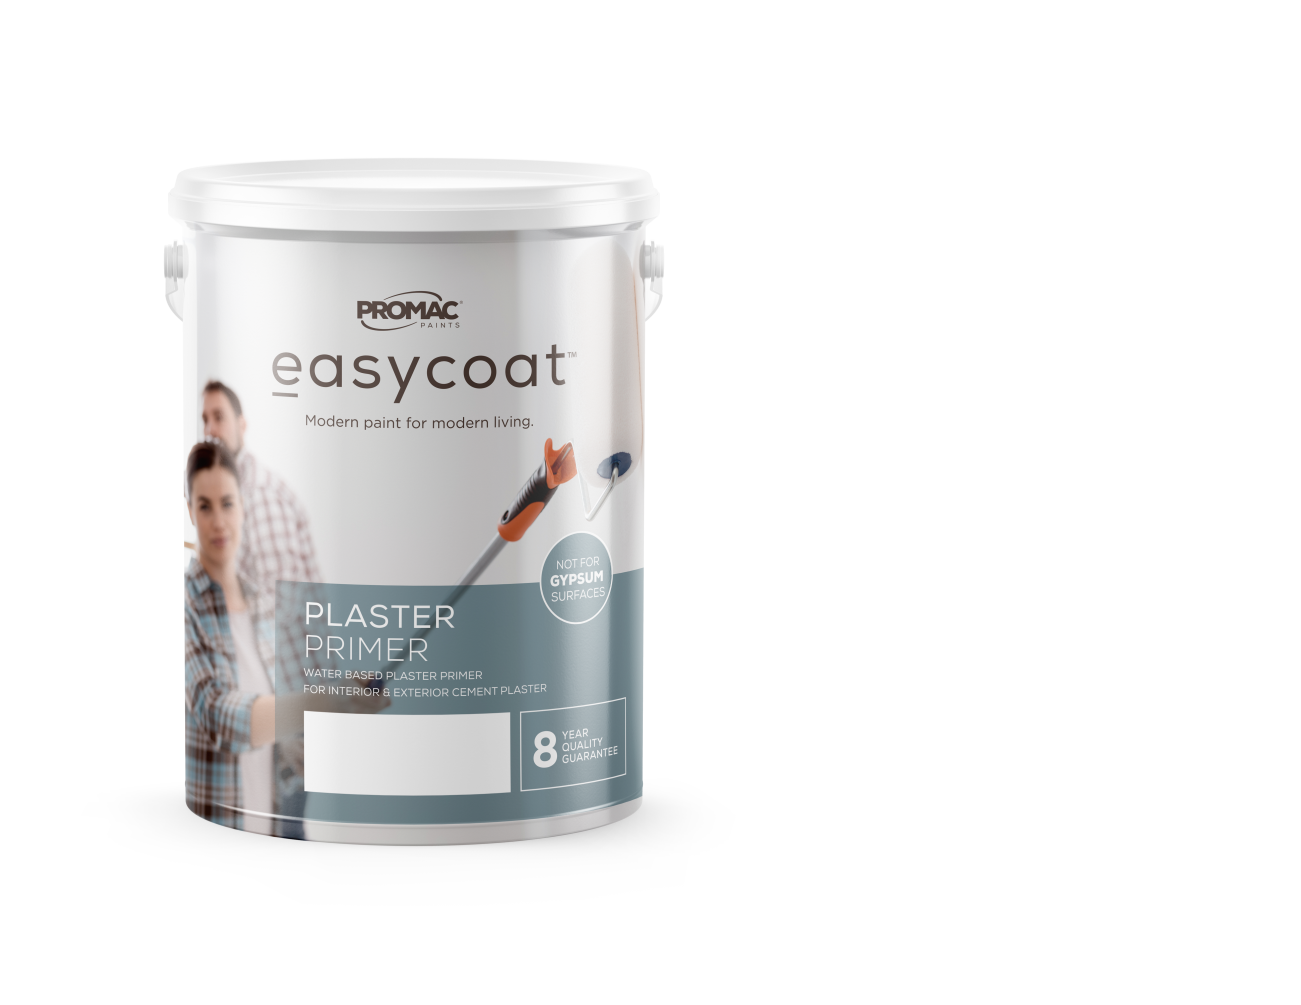 PLASTERPRIMER - WATER BASEDPromac Easycoat Plaster Primer is a water based plaster primer which penetrates the surface and ensures optimum adhesion of top coats to the surface.